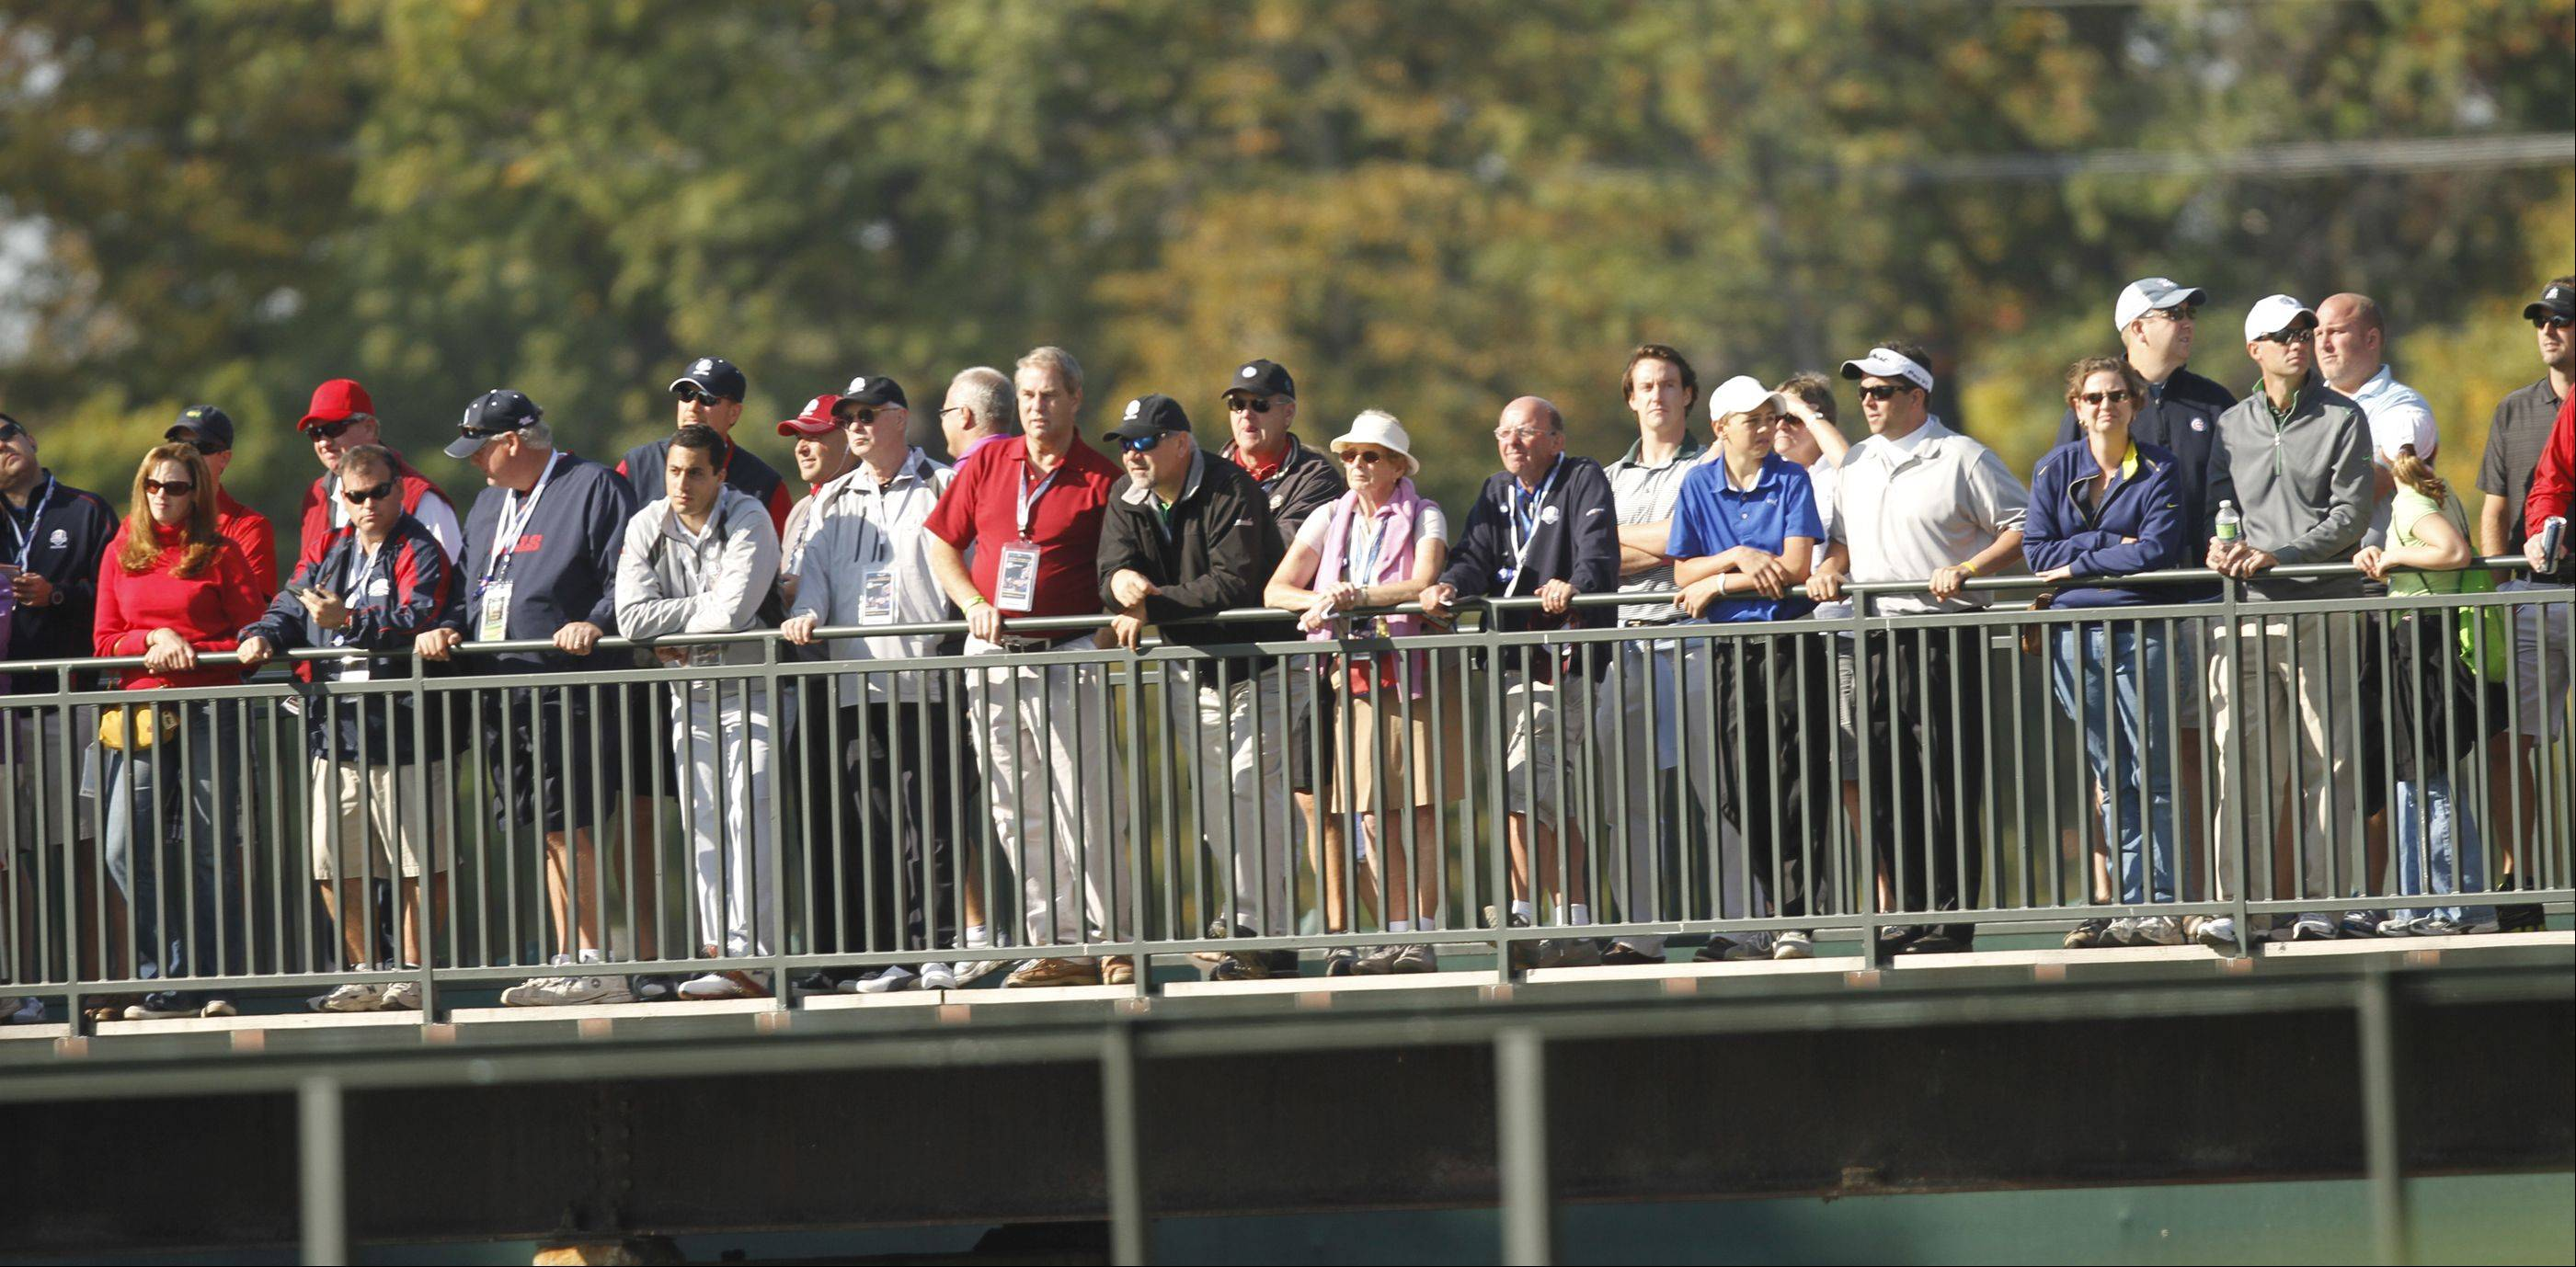 Fans watch the action on from the bridge on the 13th hole Saturday morning during day 2 of the 2012 Ryder Cup at Medinah Country Club.